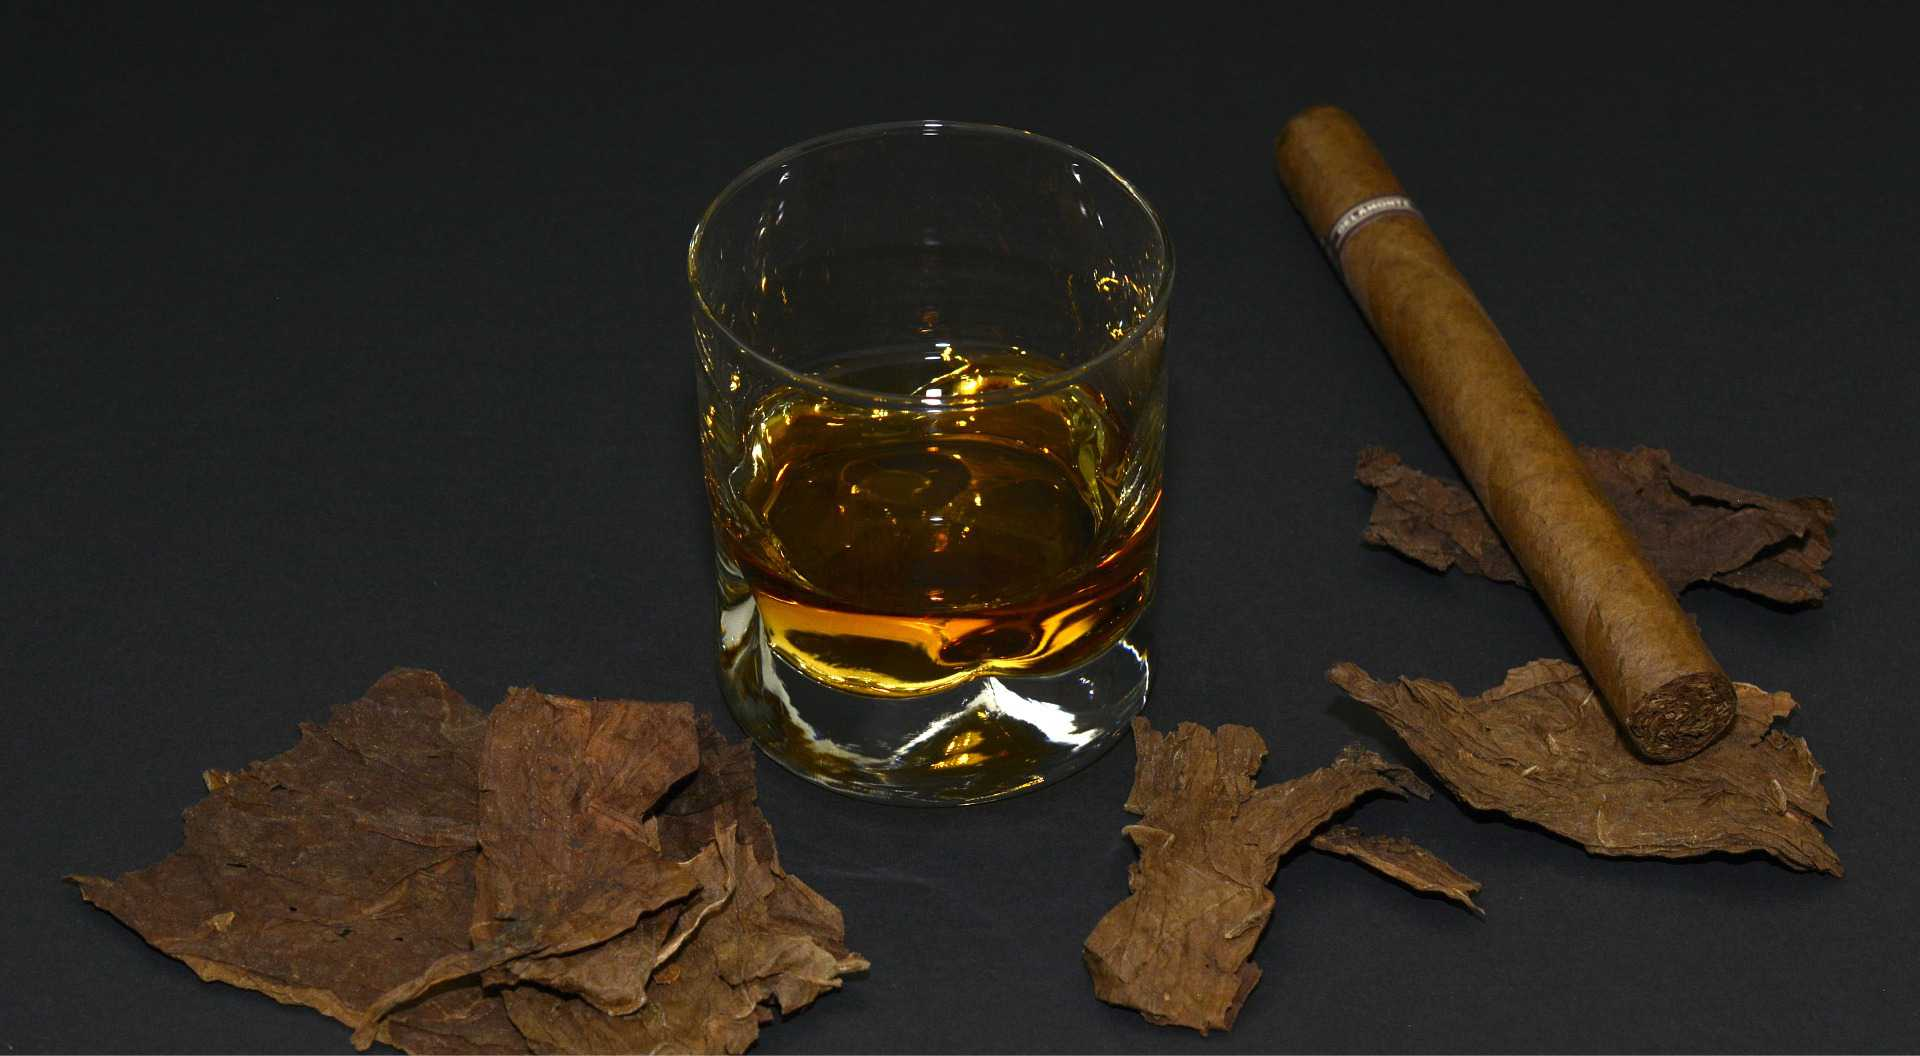 Impact of Smoking and Alcohol on Male Infertility